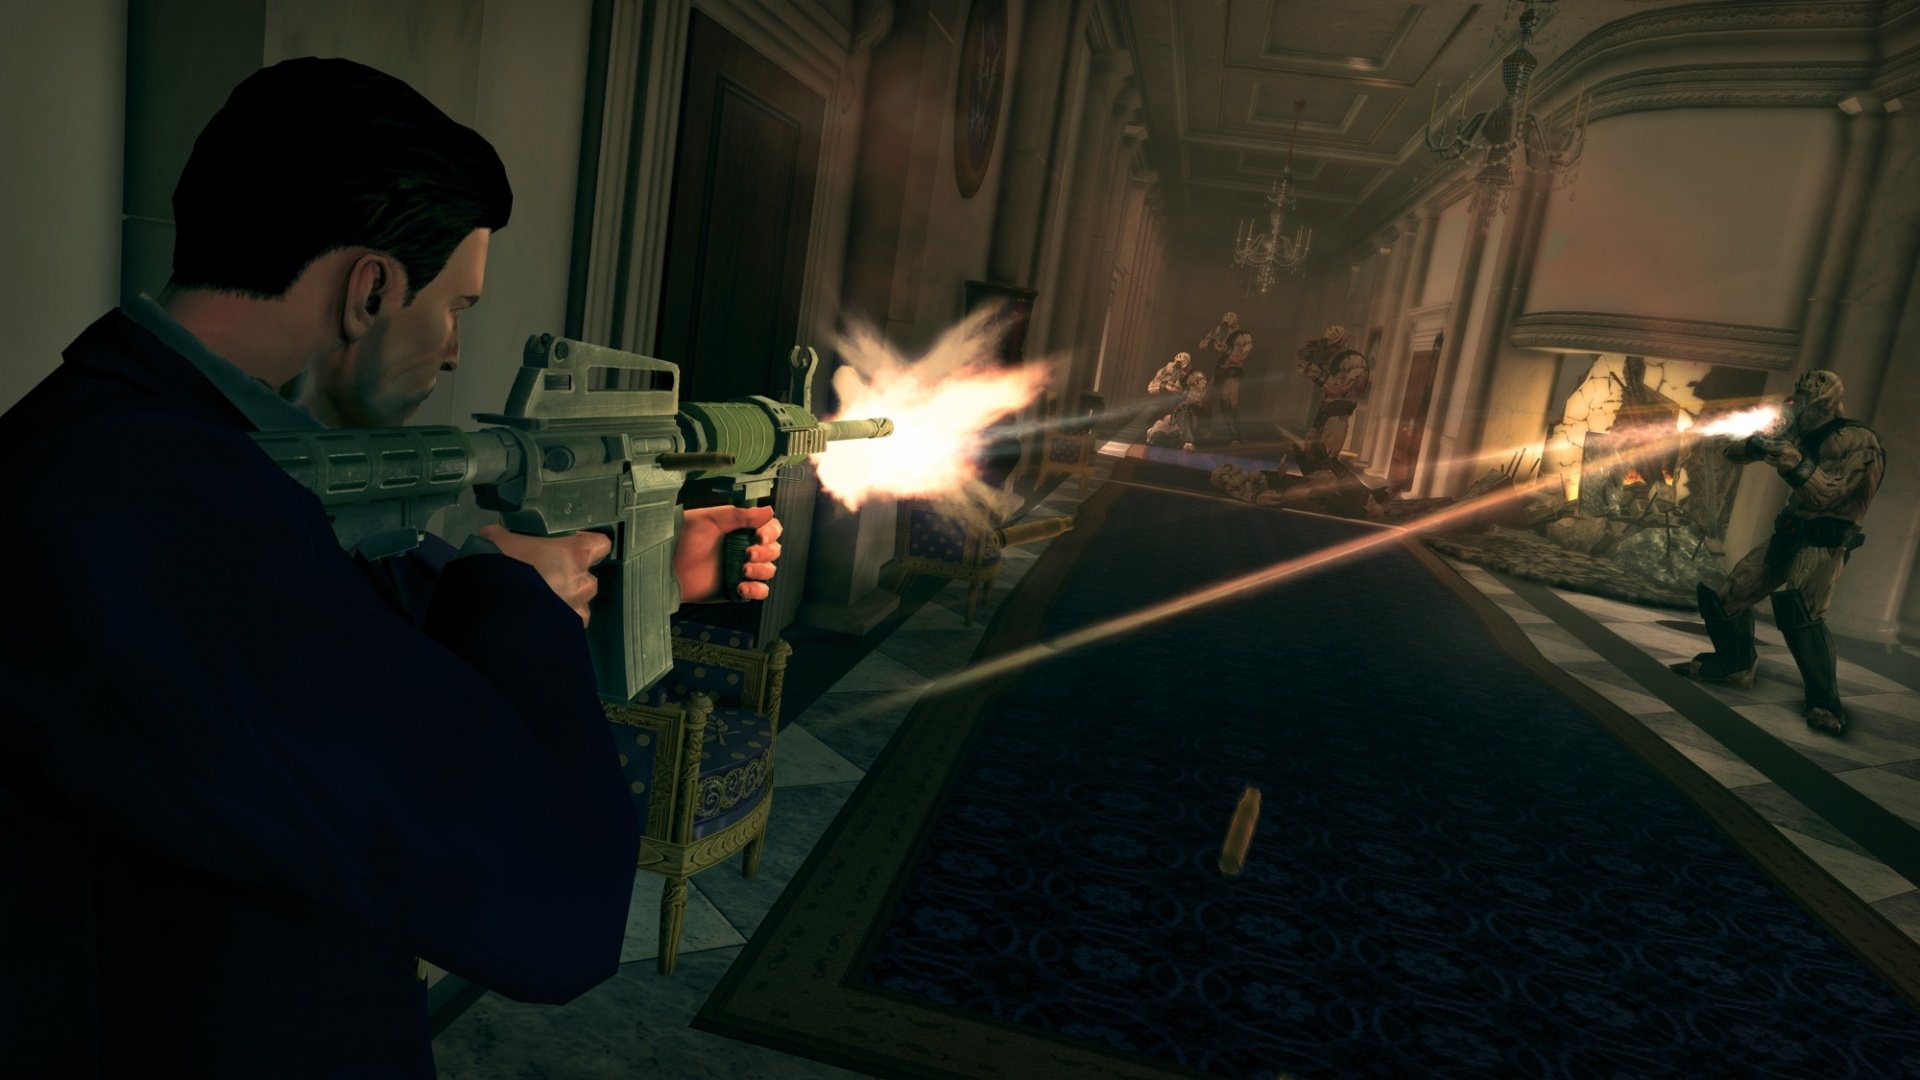 Saints Row IV Review - Hilarious and Over The Top